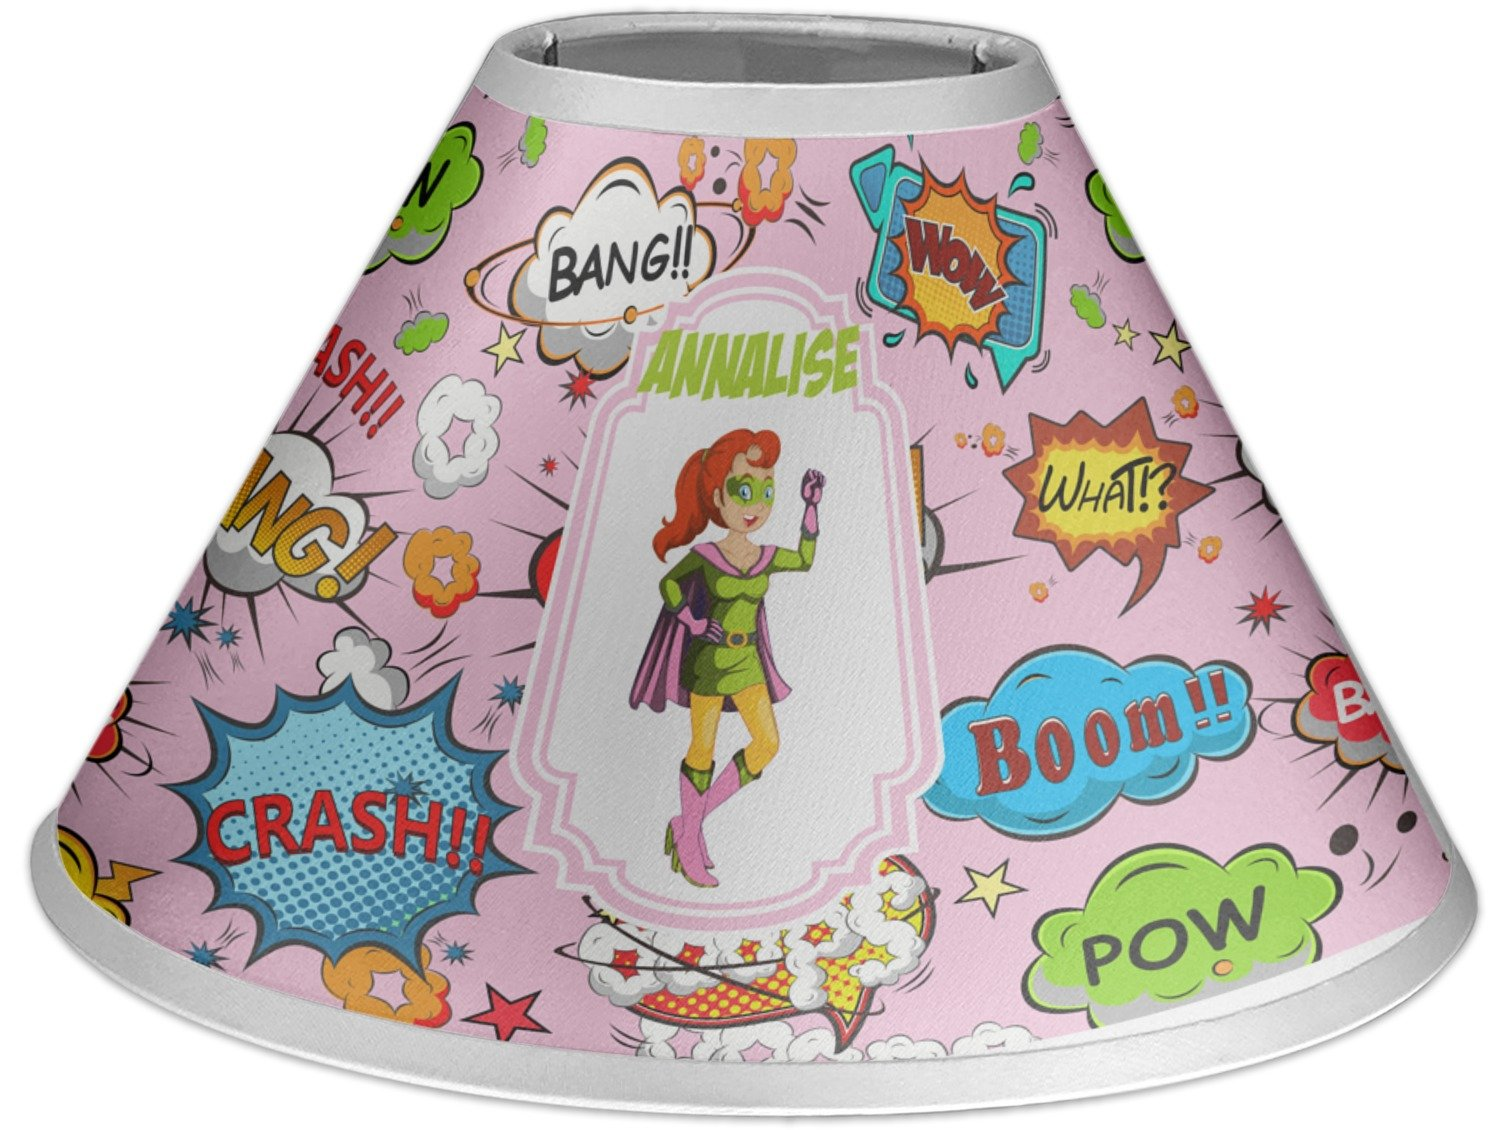 RNK Shops Woman Superhero Coolie Lamp Shade (Personalized)